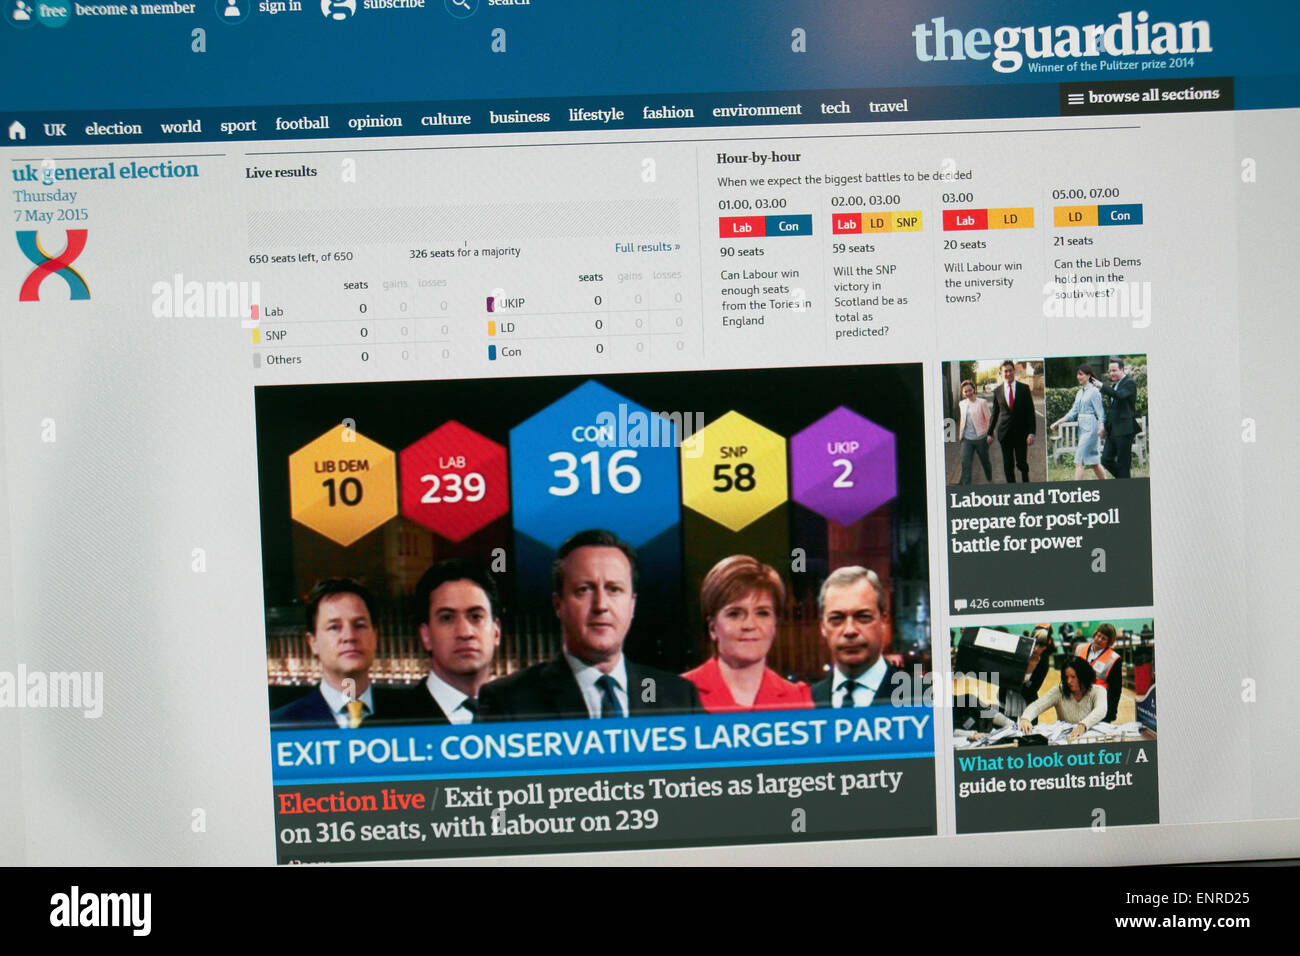 The Guardian website showing the shock exit poll soon after 10pm on 7th May 2015 in the UK General Election. - Stock Image